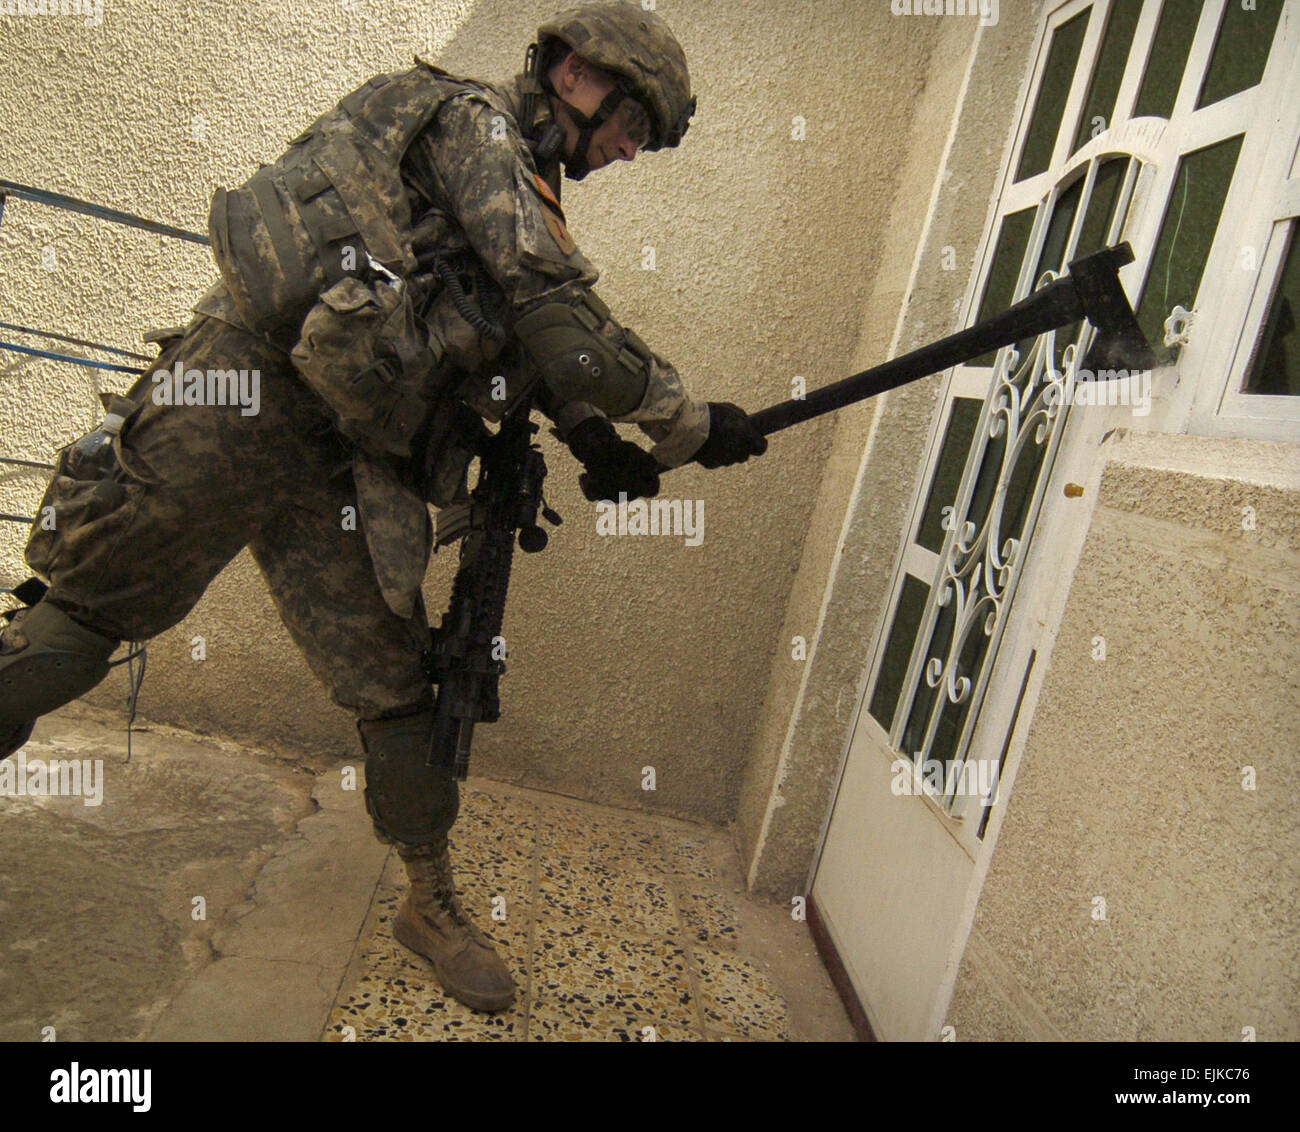 U.S. Army Sgt. David Bauer attempts to breach a door during a house-to-house search for illegal weapons explosives and high value targets in the Sadiyah ... & U.S. Army Sgt. David Bauer attempts to breach a door during a ...